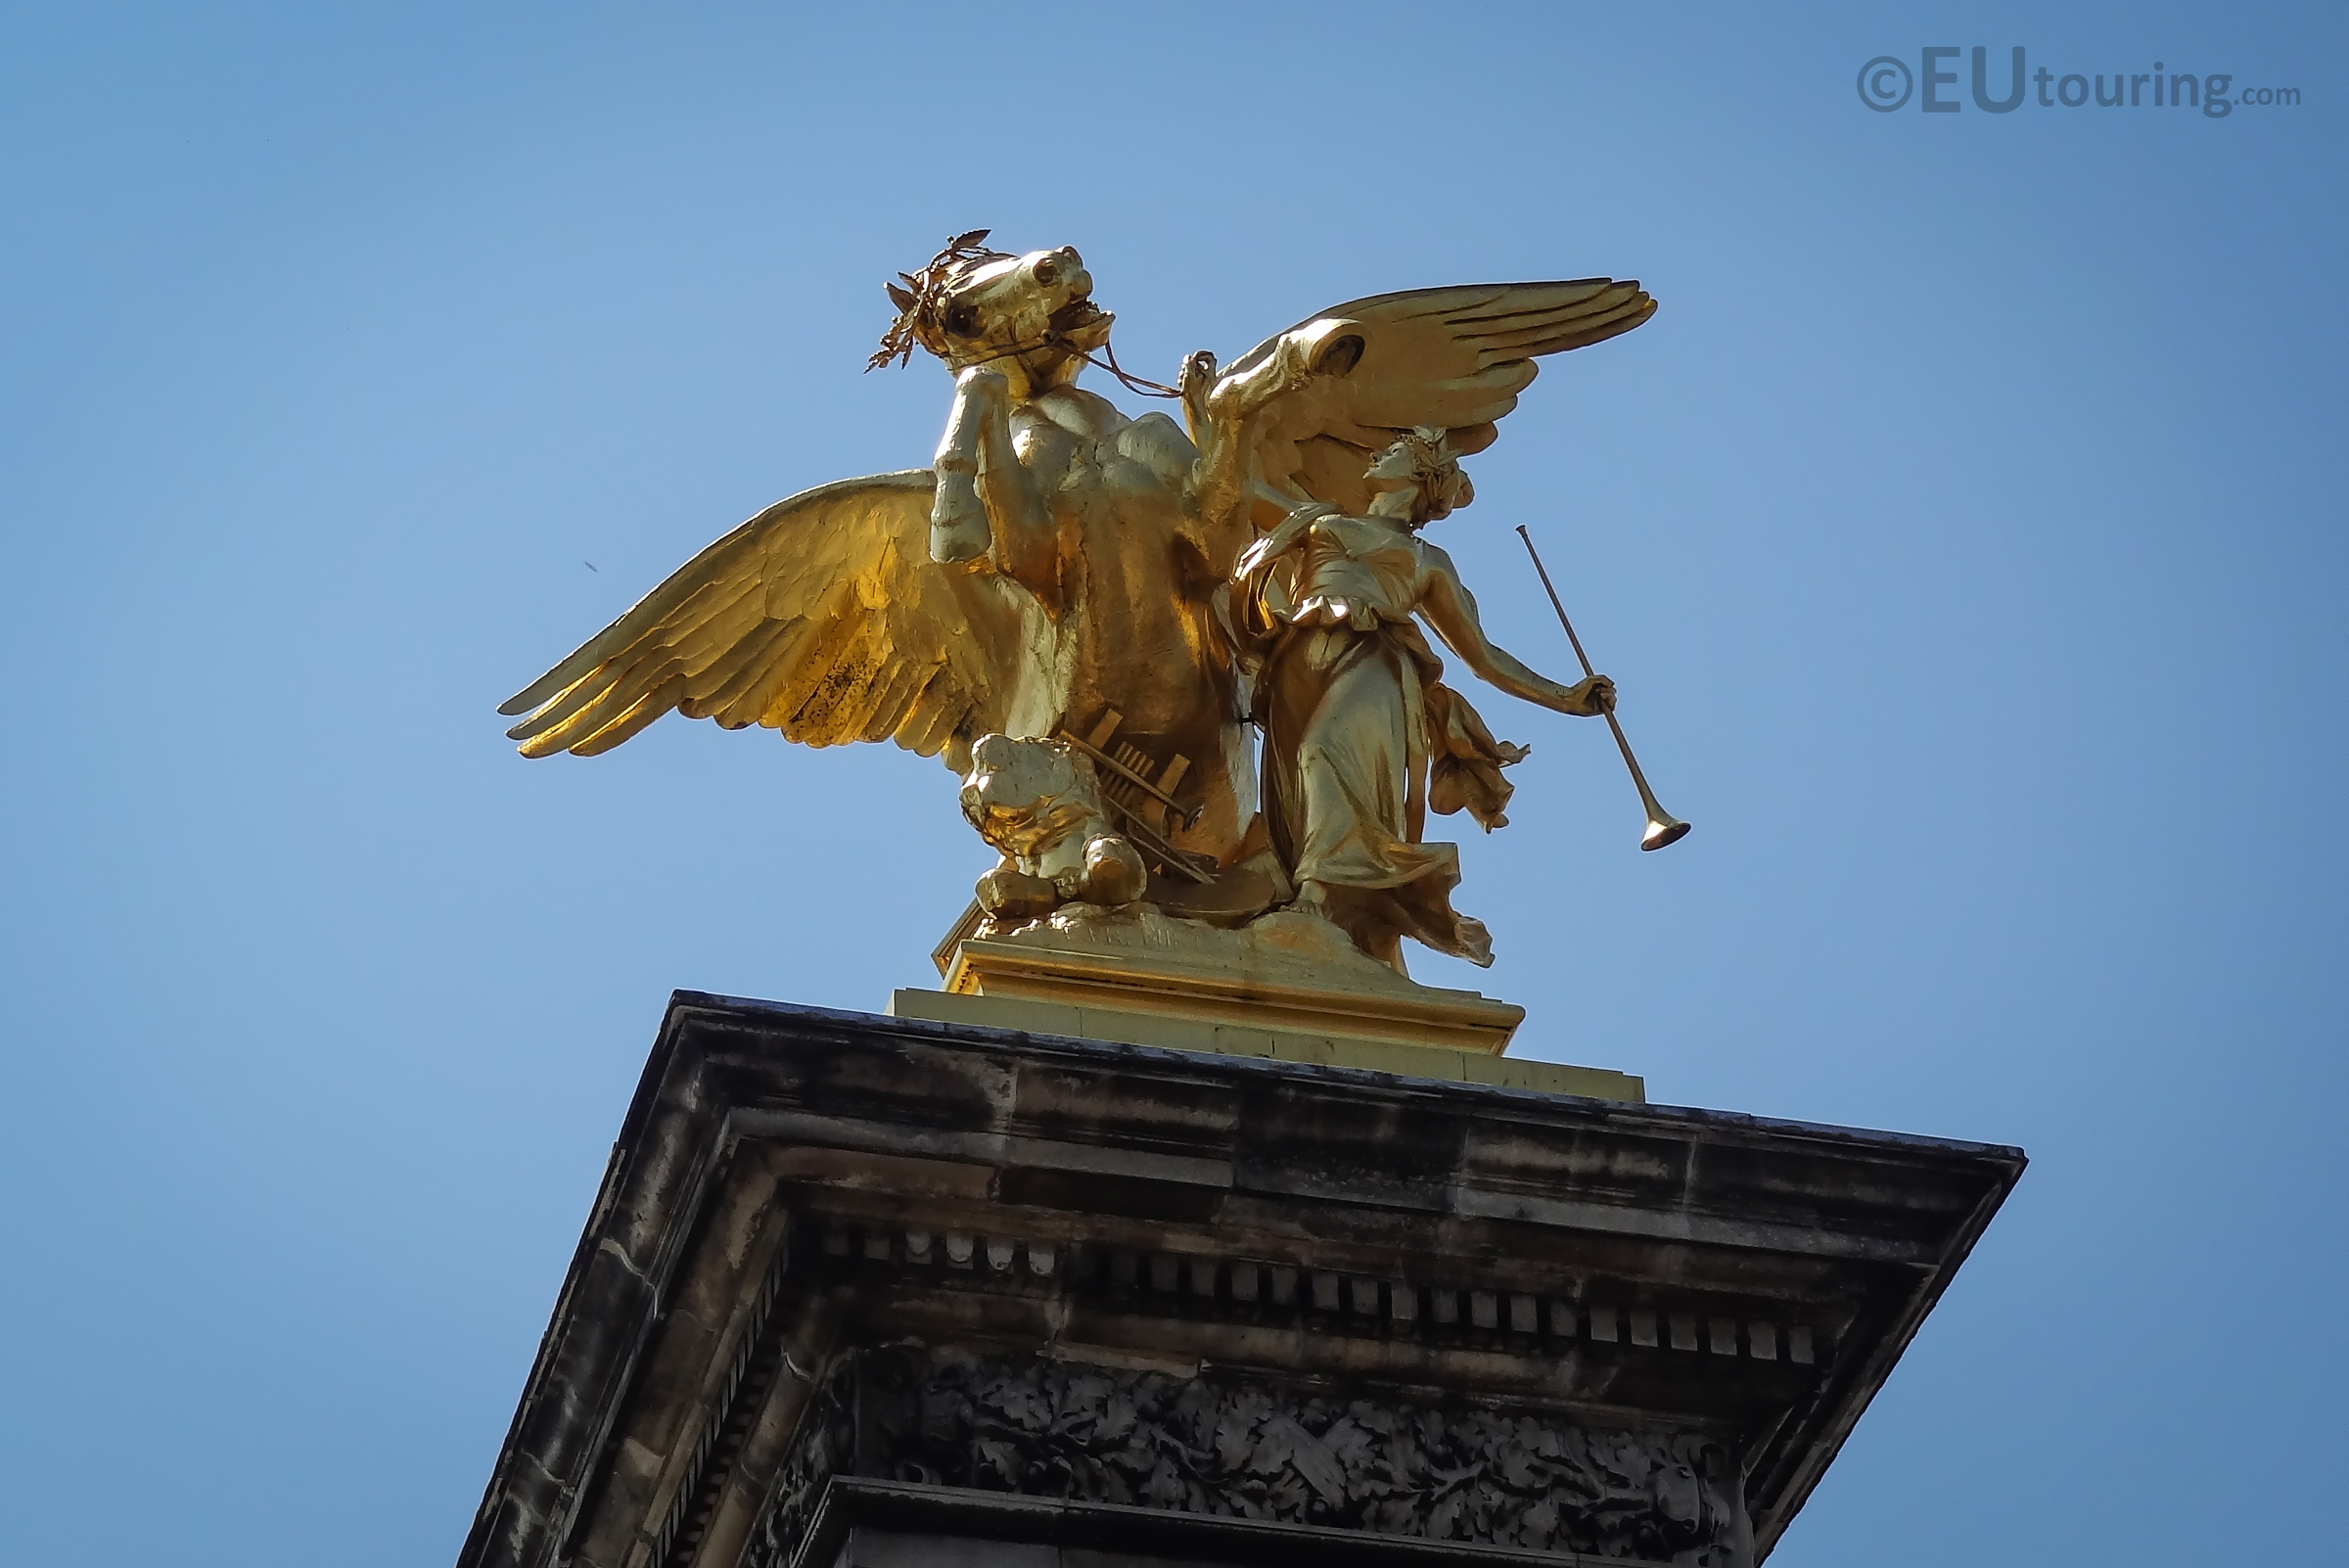 Golden Pegasus and Fame statue